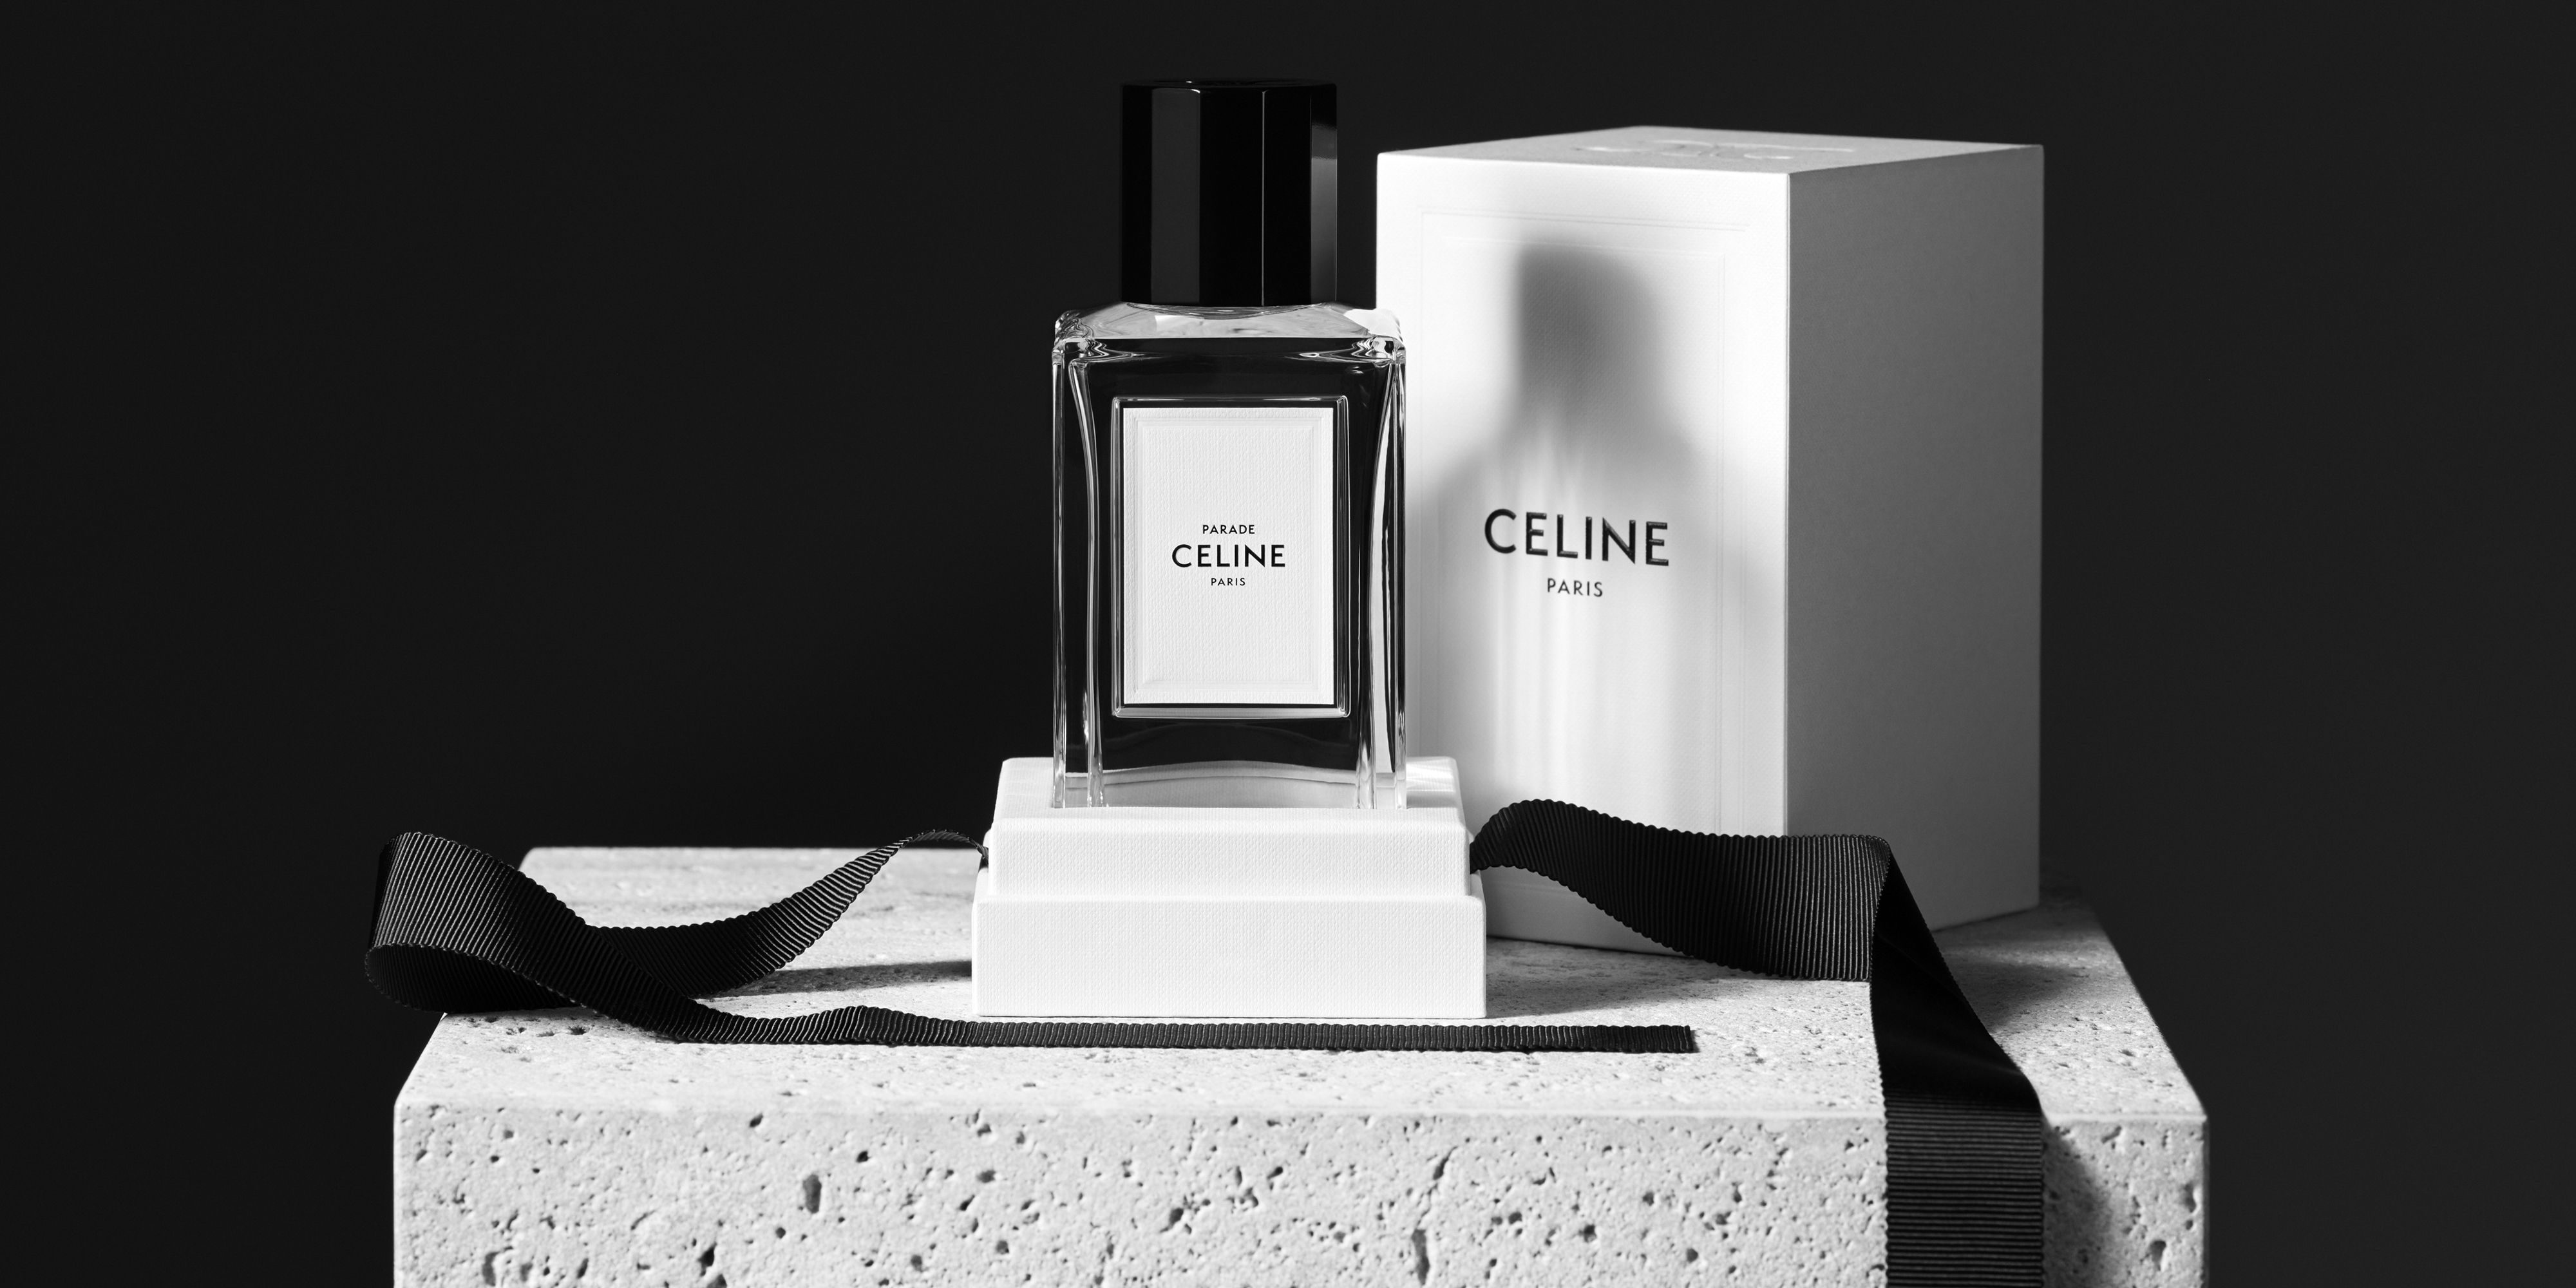 Make way for Celine's first-ever fragrance collection